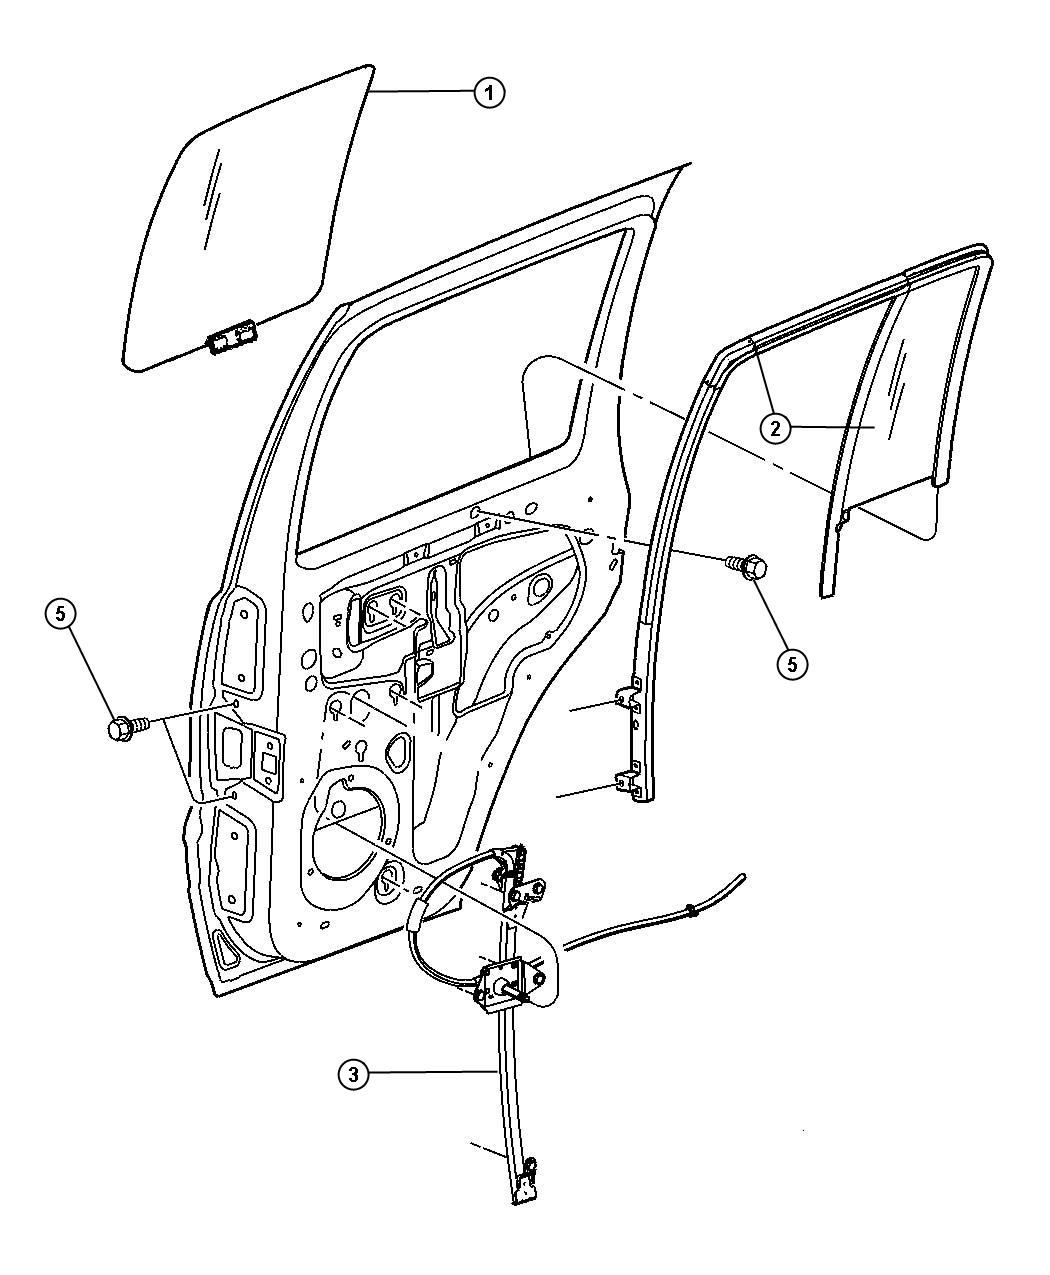 27 Jeep Liberty Fuse Box Diagram